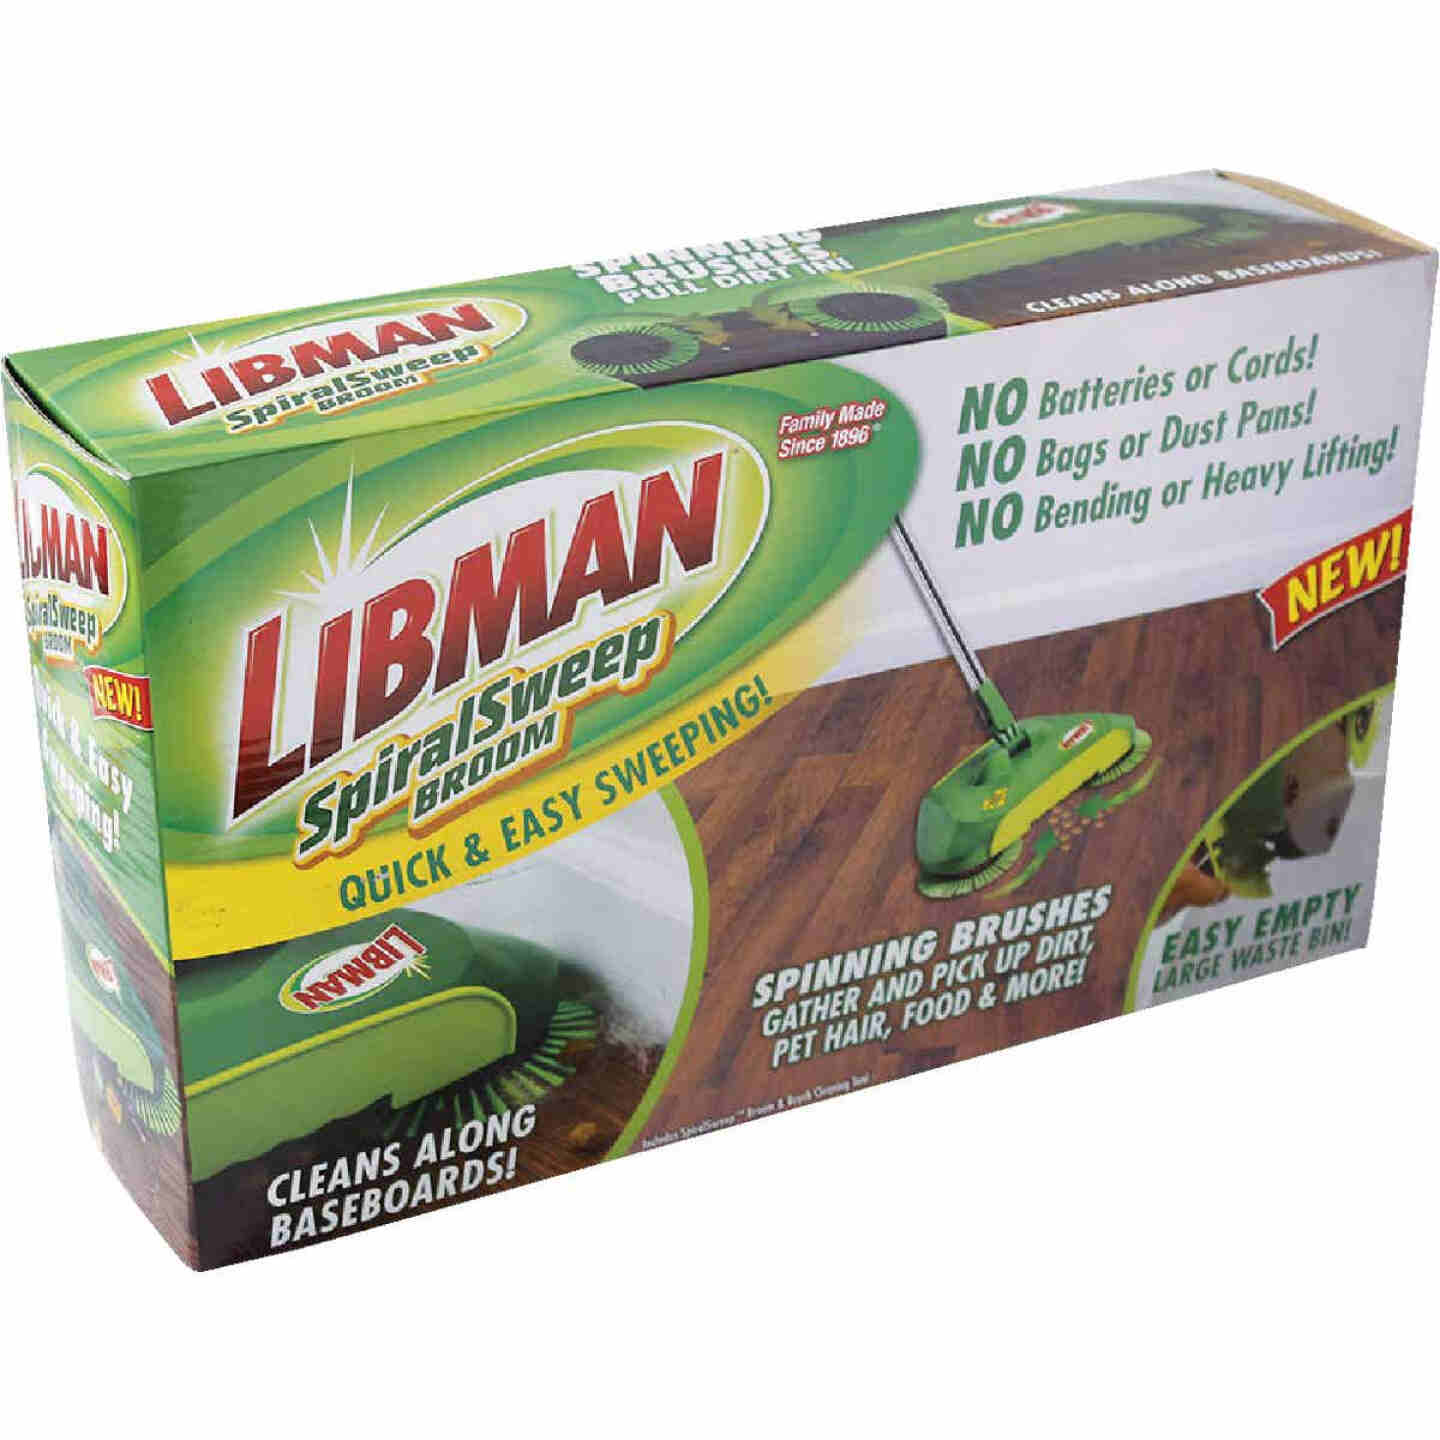 Libman SpiralSweep 12 In. W. x 45 In. L. Steel Handle Broom Image 2